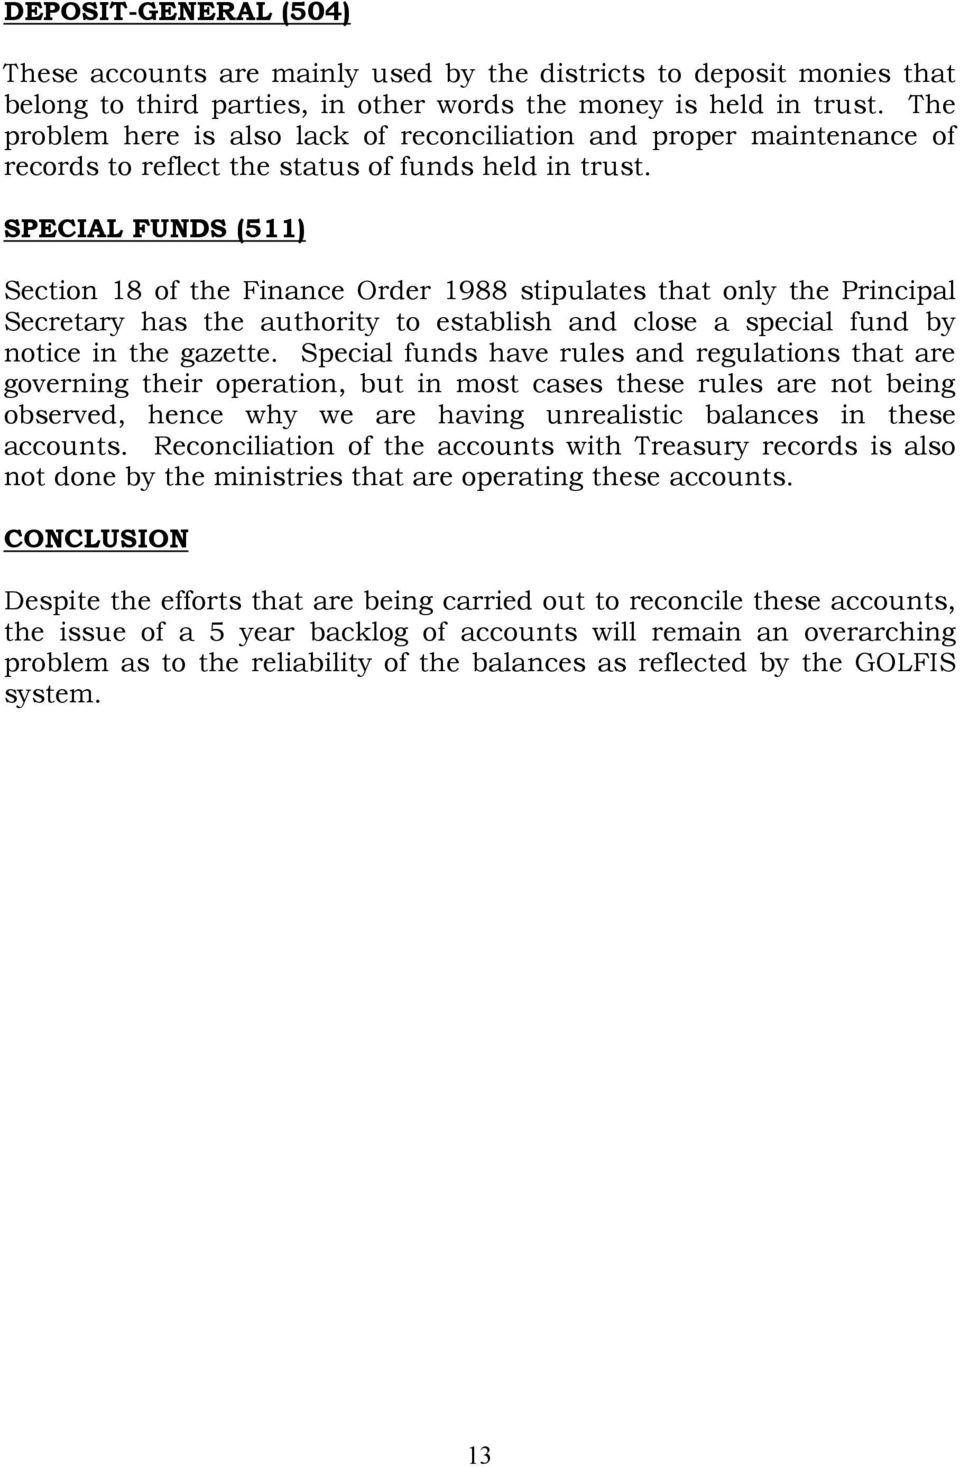 SPECIAL FUNDS (511) Section 18 of the Finance Order 1988 stipulates that only the Principal Secretary has the authority to establish and close a special fund by notice in the gazette.